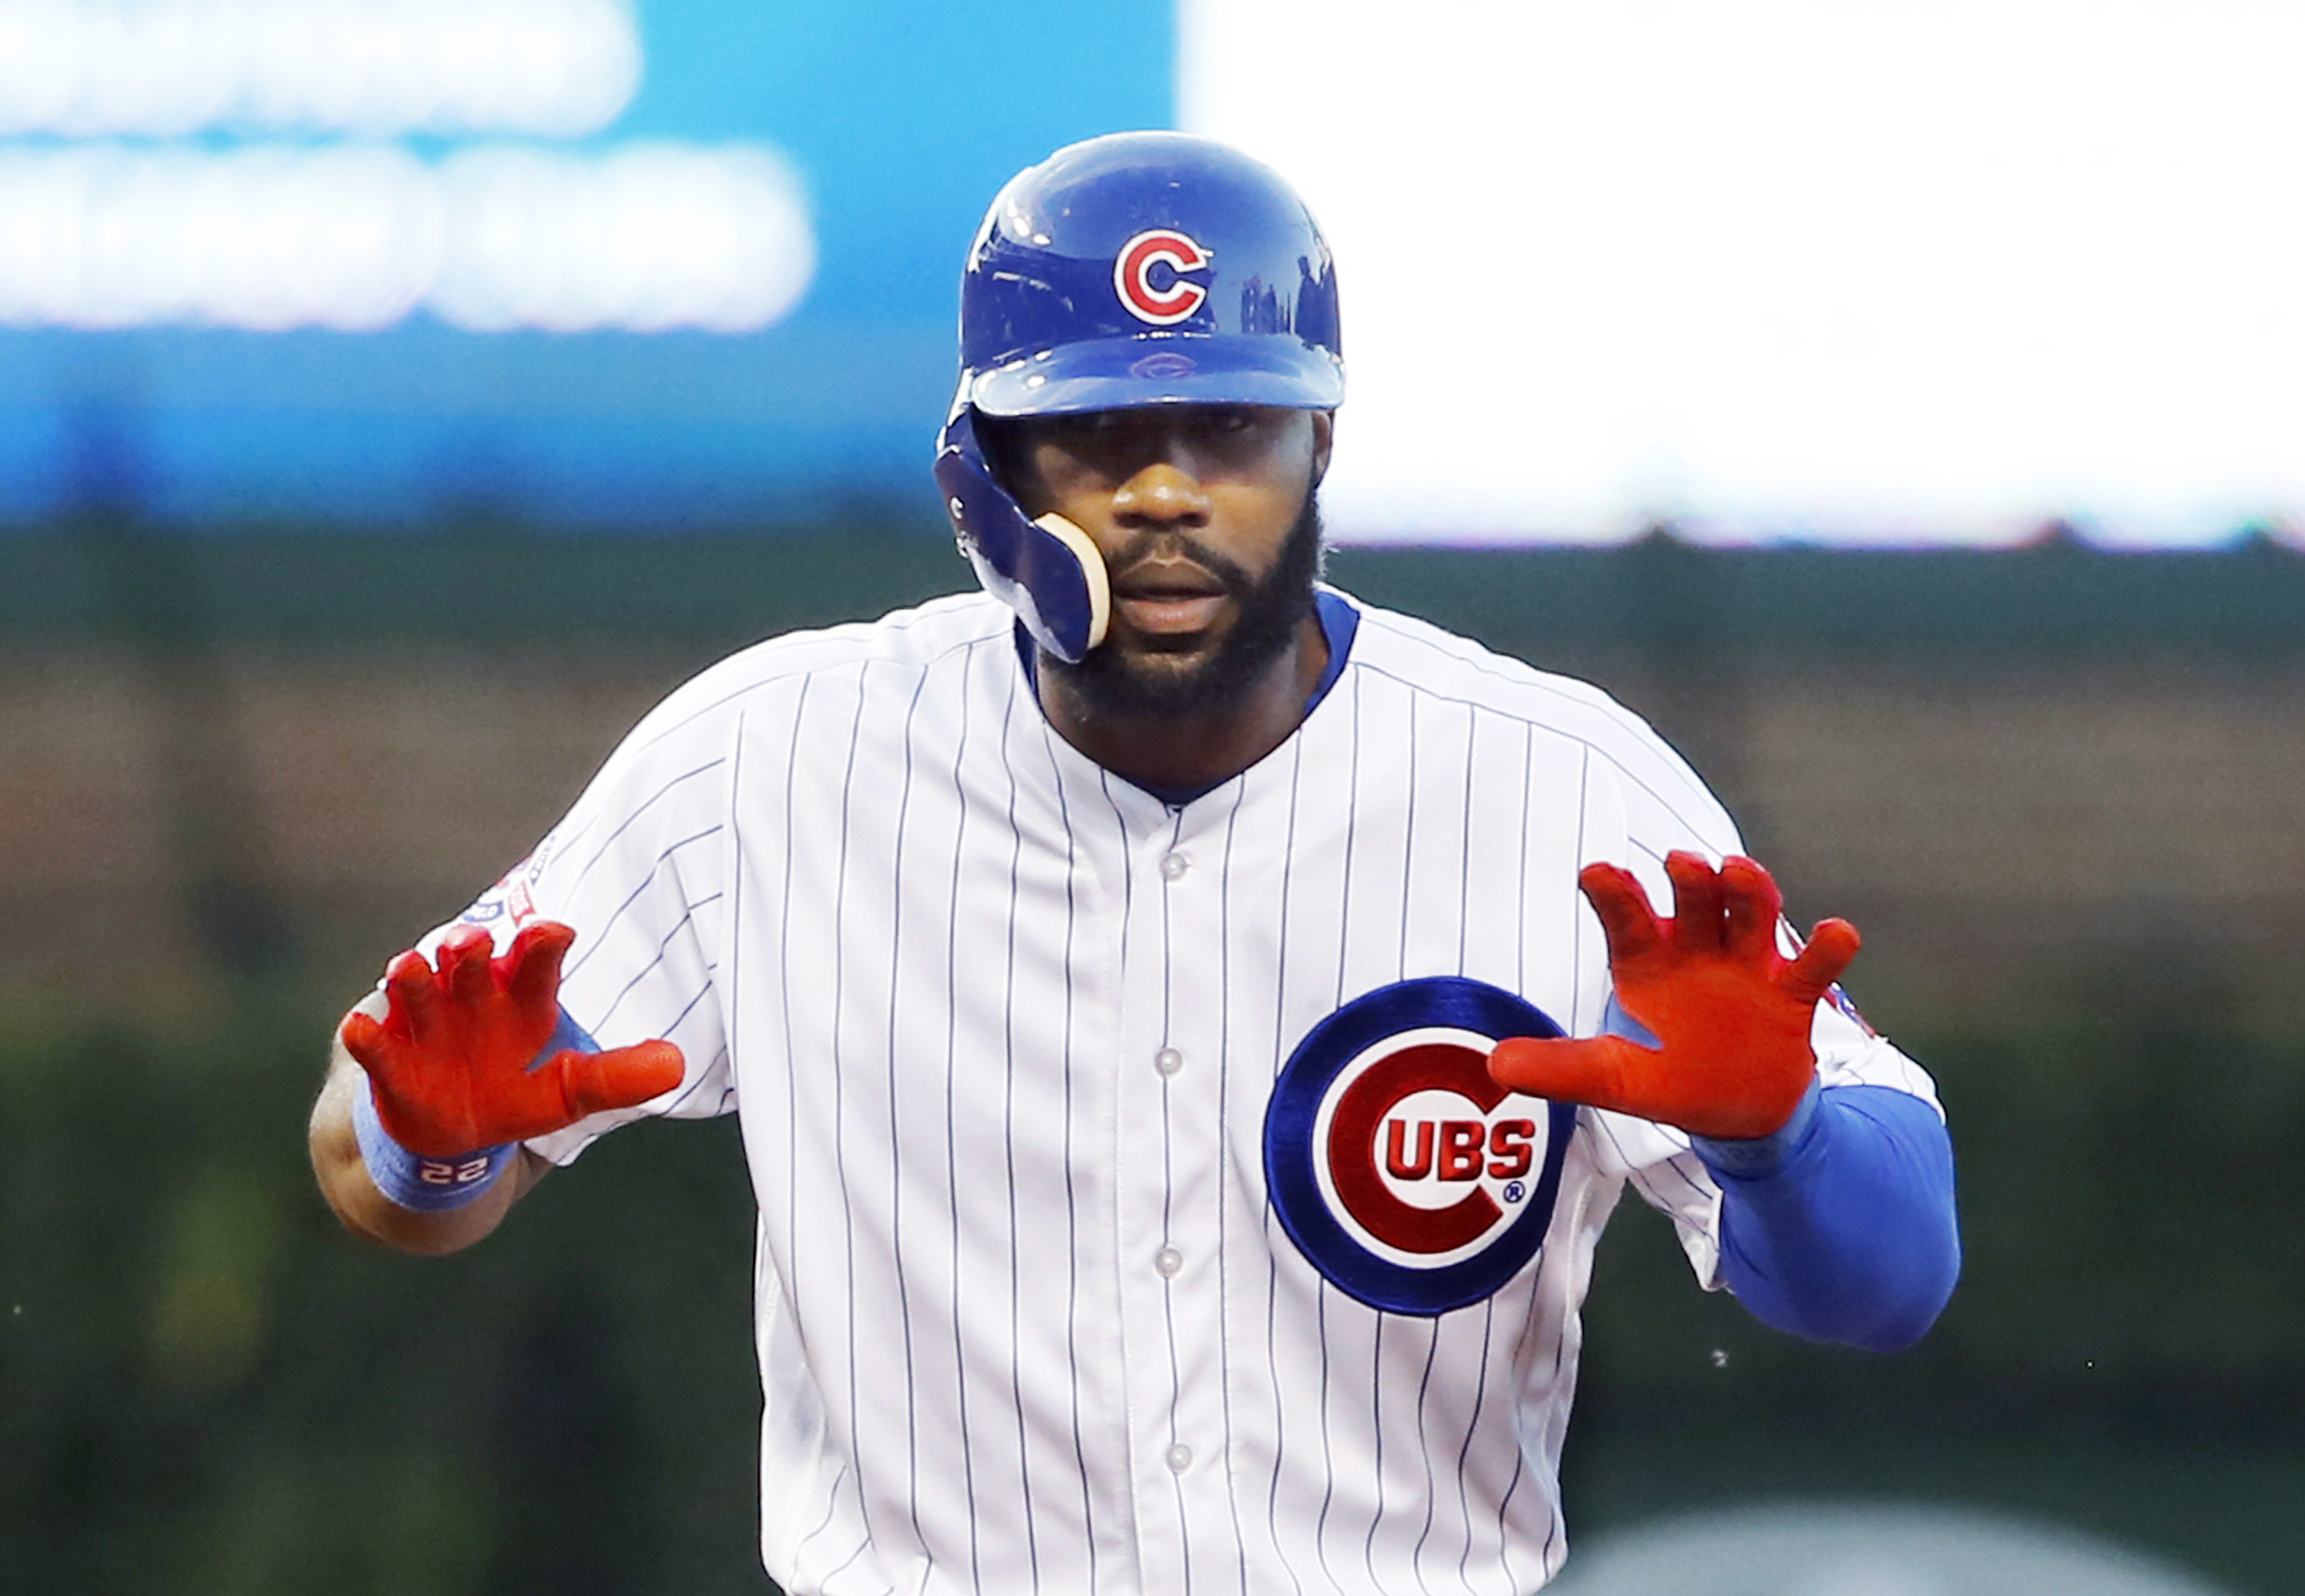 Chicago Cubs' Jason Heyward reacts after hitting an RBI double off St. Louis Cardinals starting pitcher Adam Wainwright, scoring Chris Coghlan during the third inning of a baseball game Tuesday, June 21, 2016, in Chicago. (AP Photo/Charles Rex Arbogast)